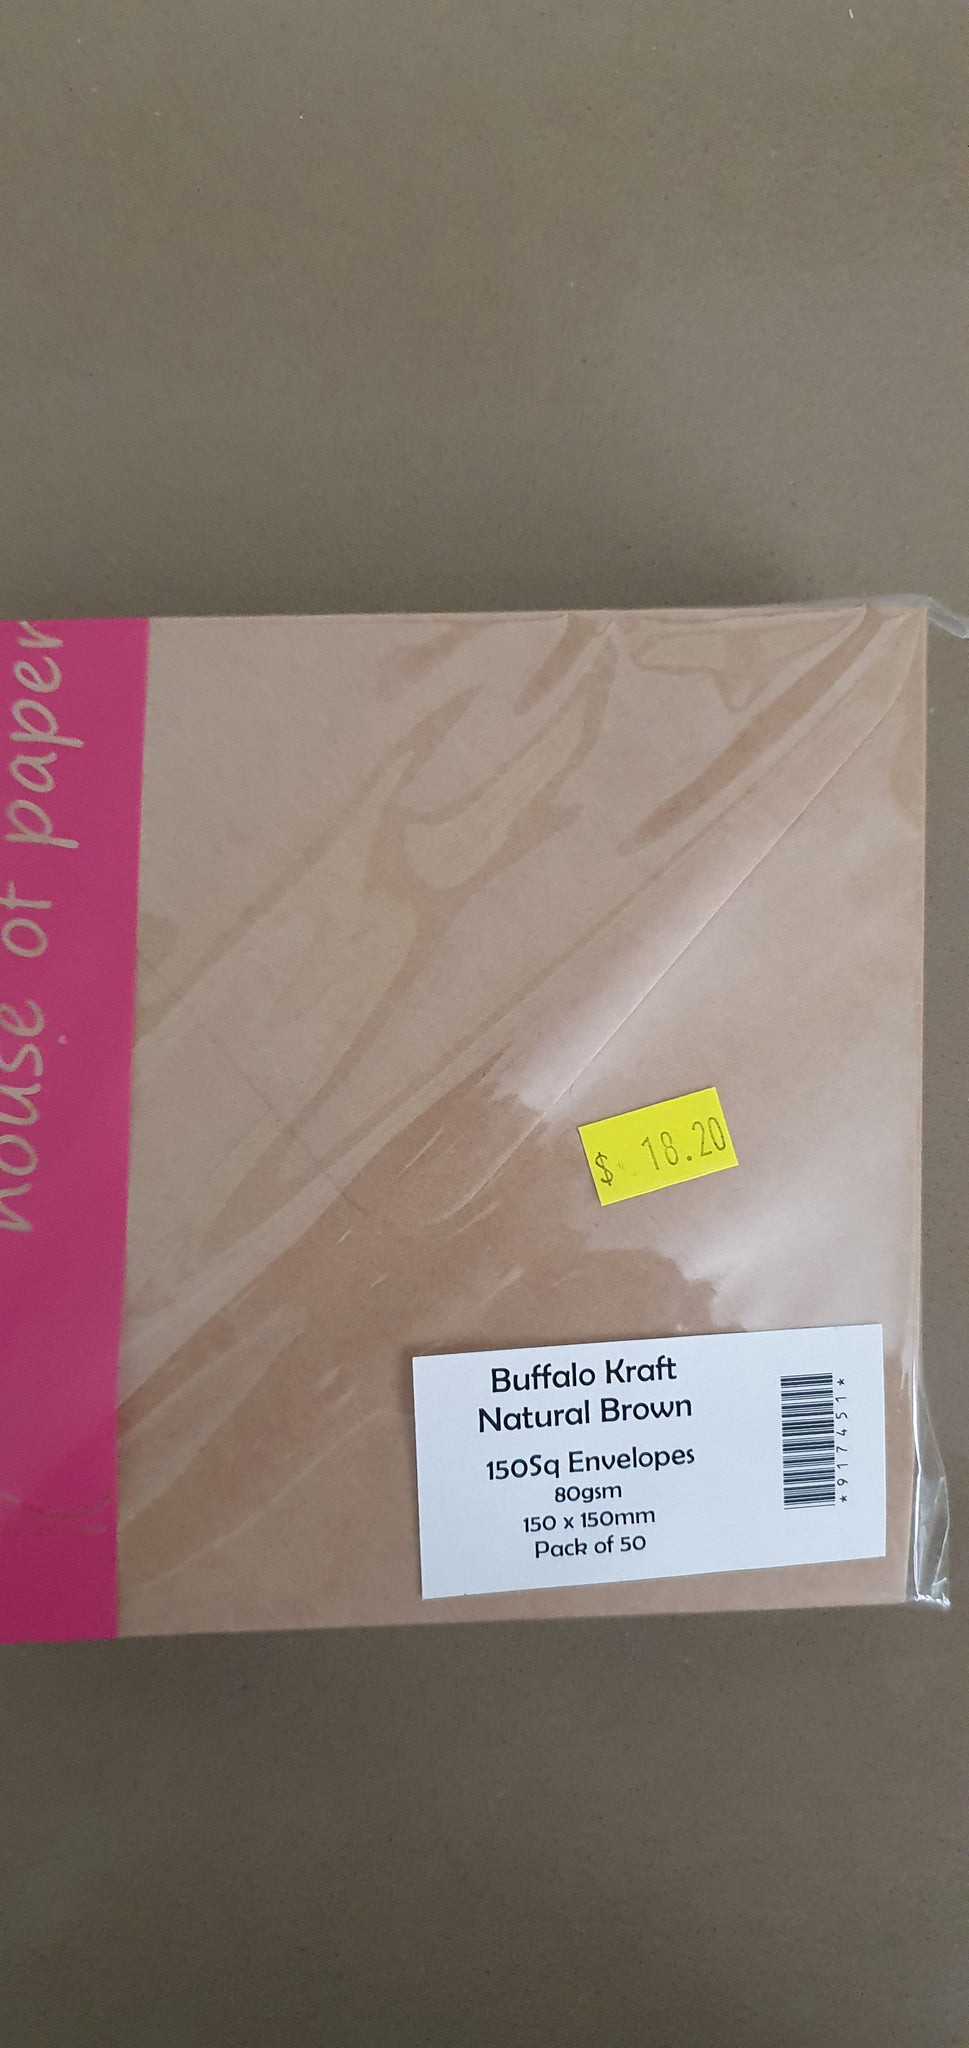 House of Paper Buffalo Kraft Natural Brown Envelopes 150sq 50pk